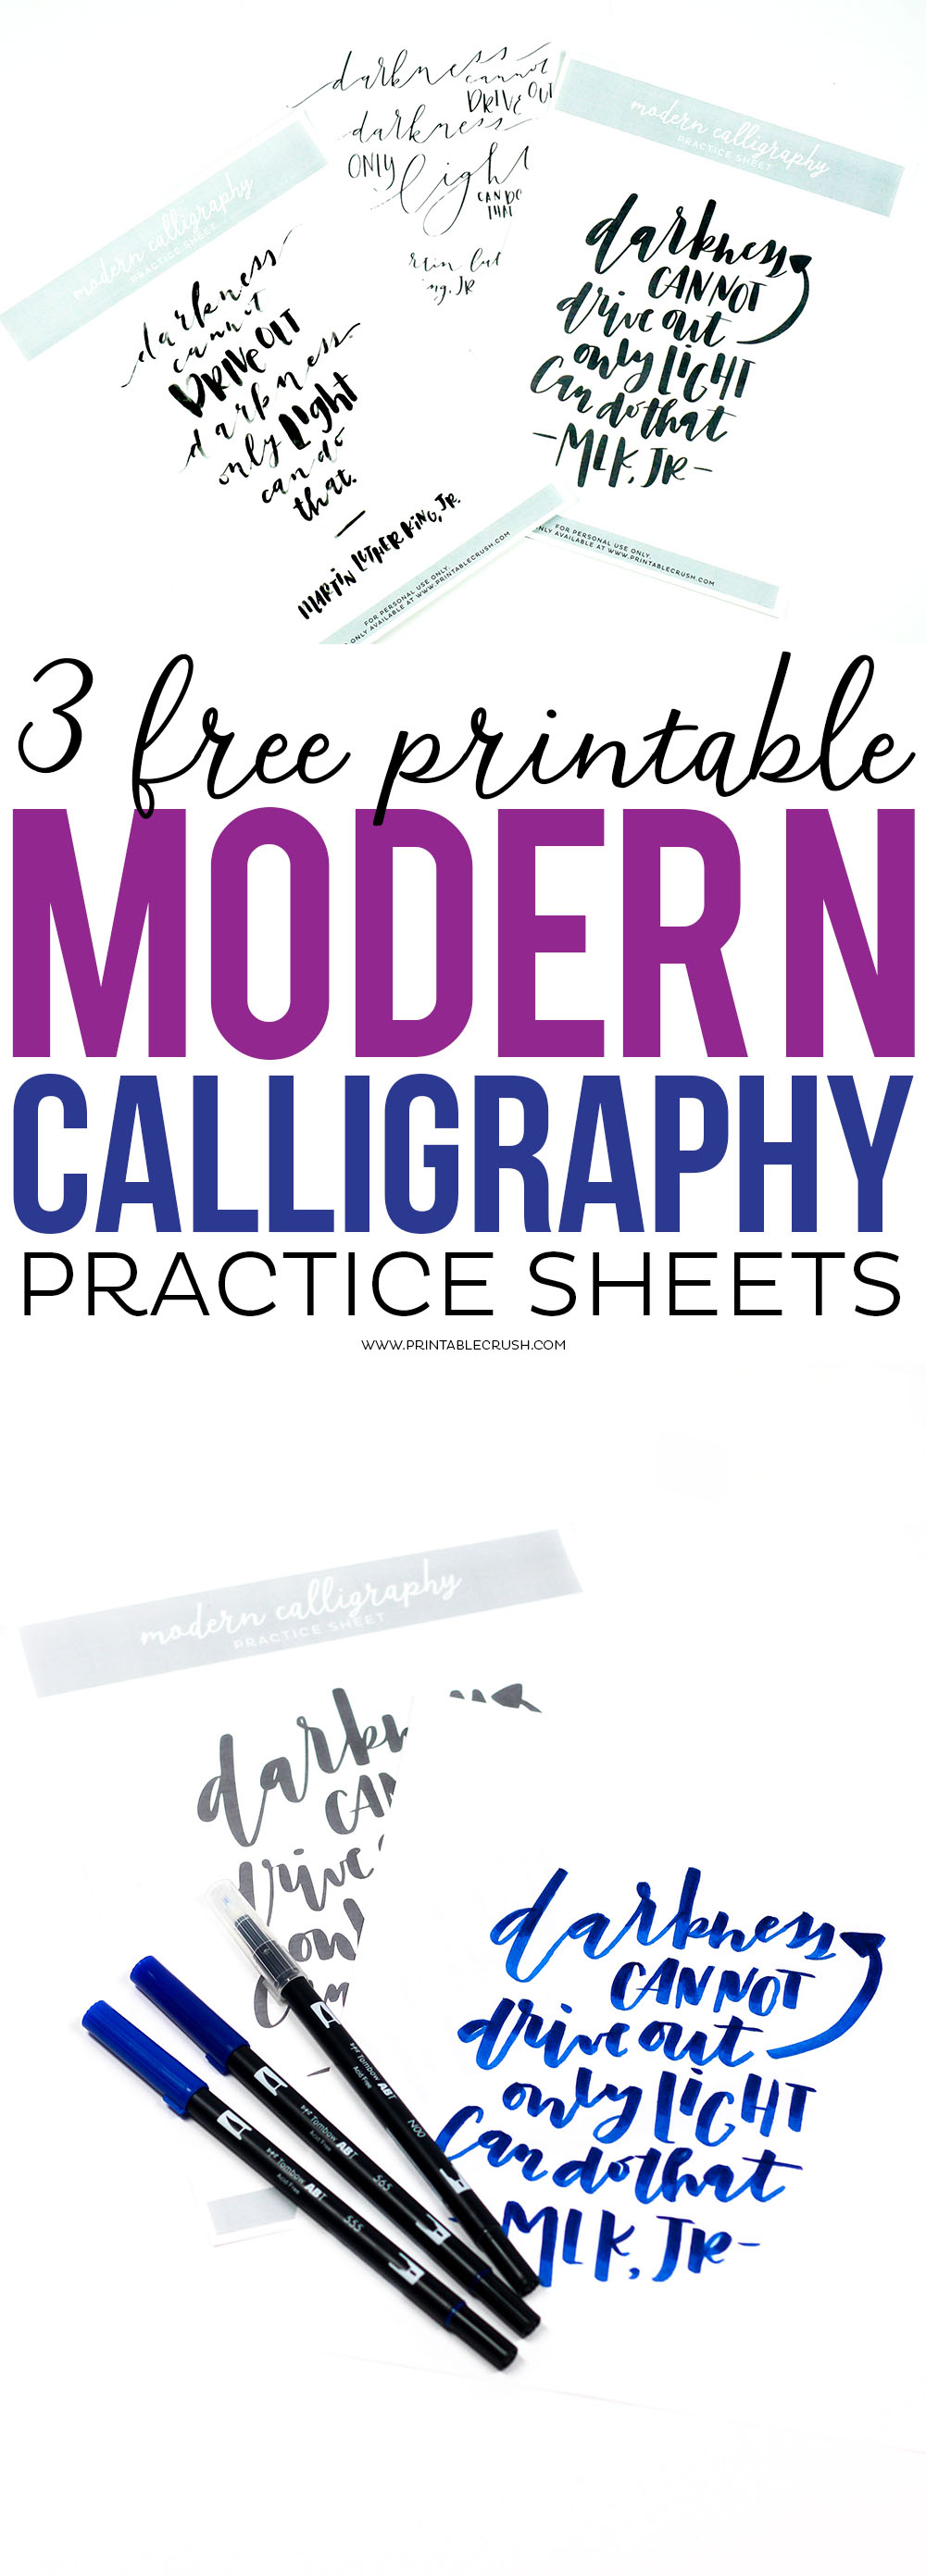 3 Free Printable Modern Calligraphy Practice Sheets - Printable Crush